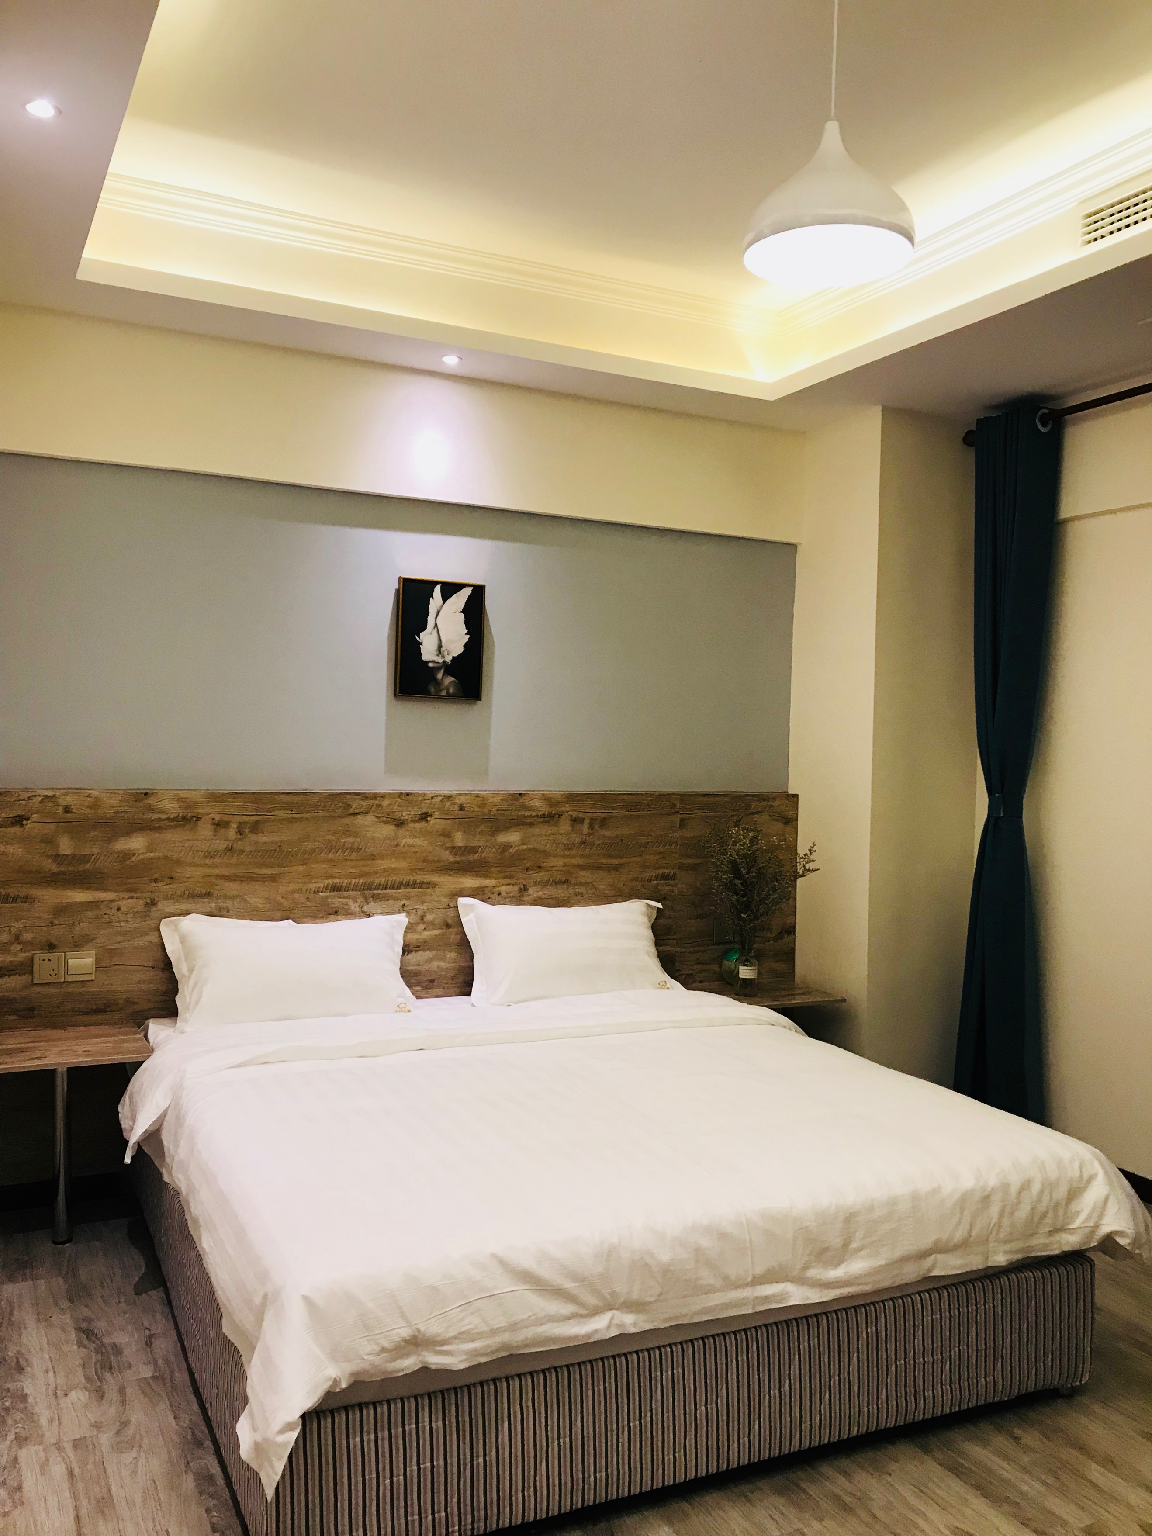 3 amigos – Hotel Review, Pictures and Room Rates